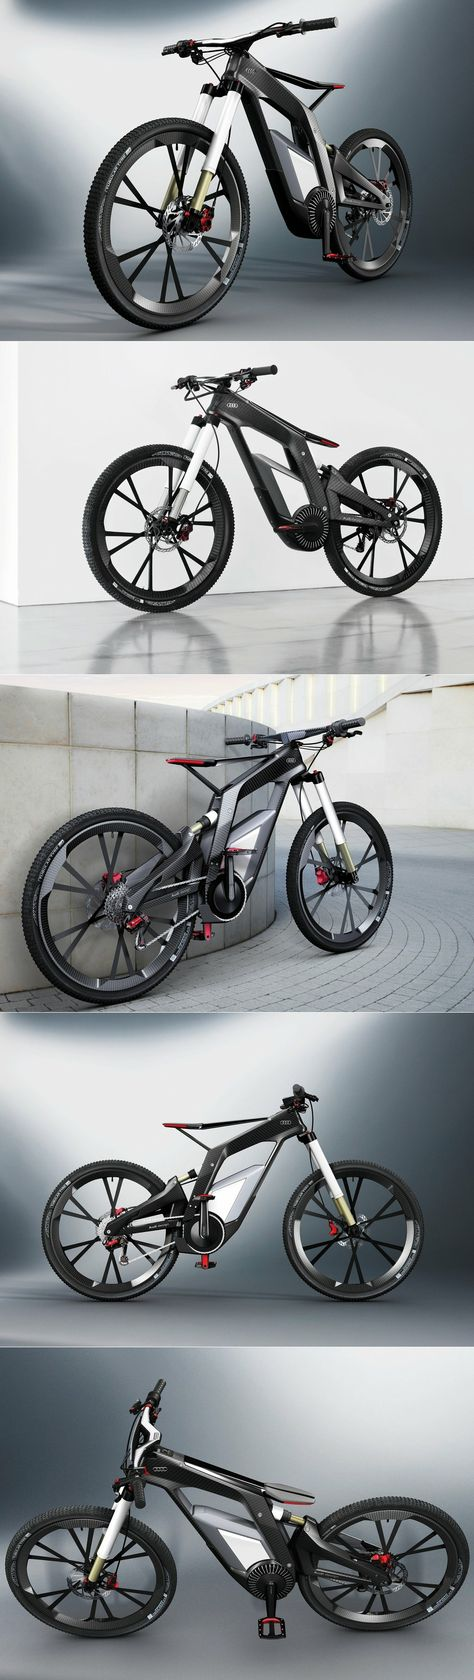 The audi e bike is the fastest electric bicycle is the fastest of its kind we ve ever seen cars motorcycles that i love pinterest audi